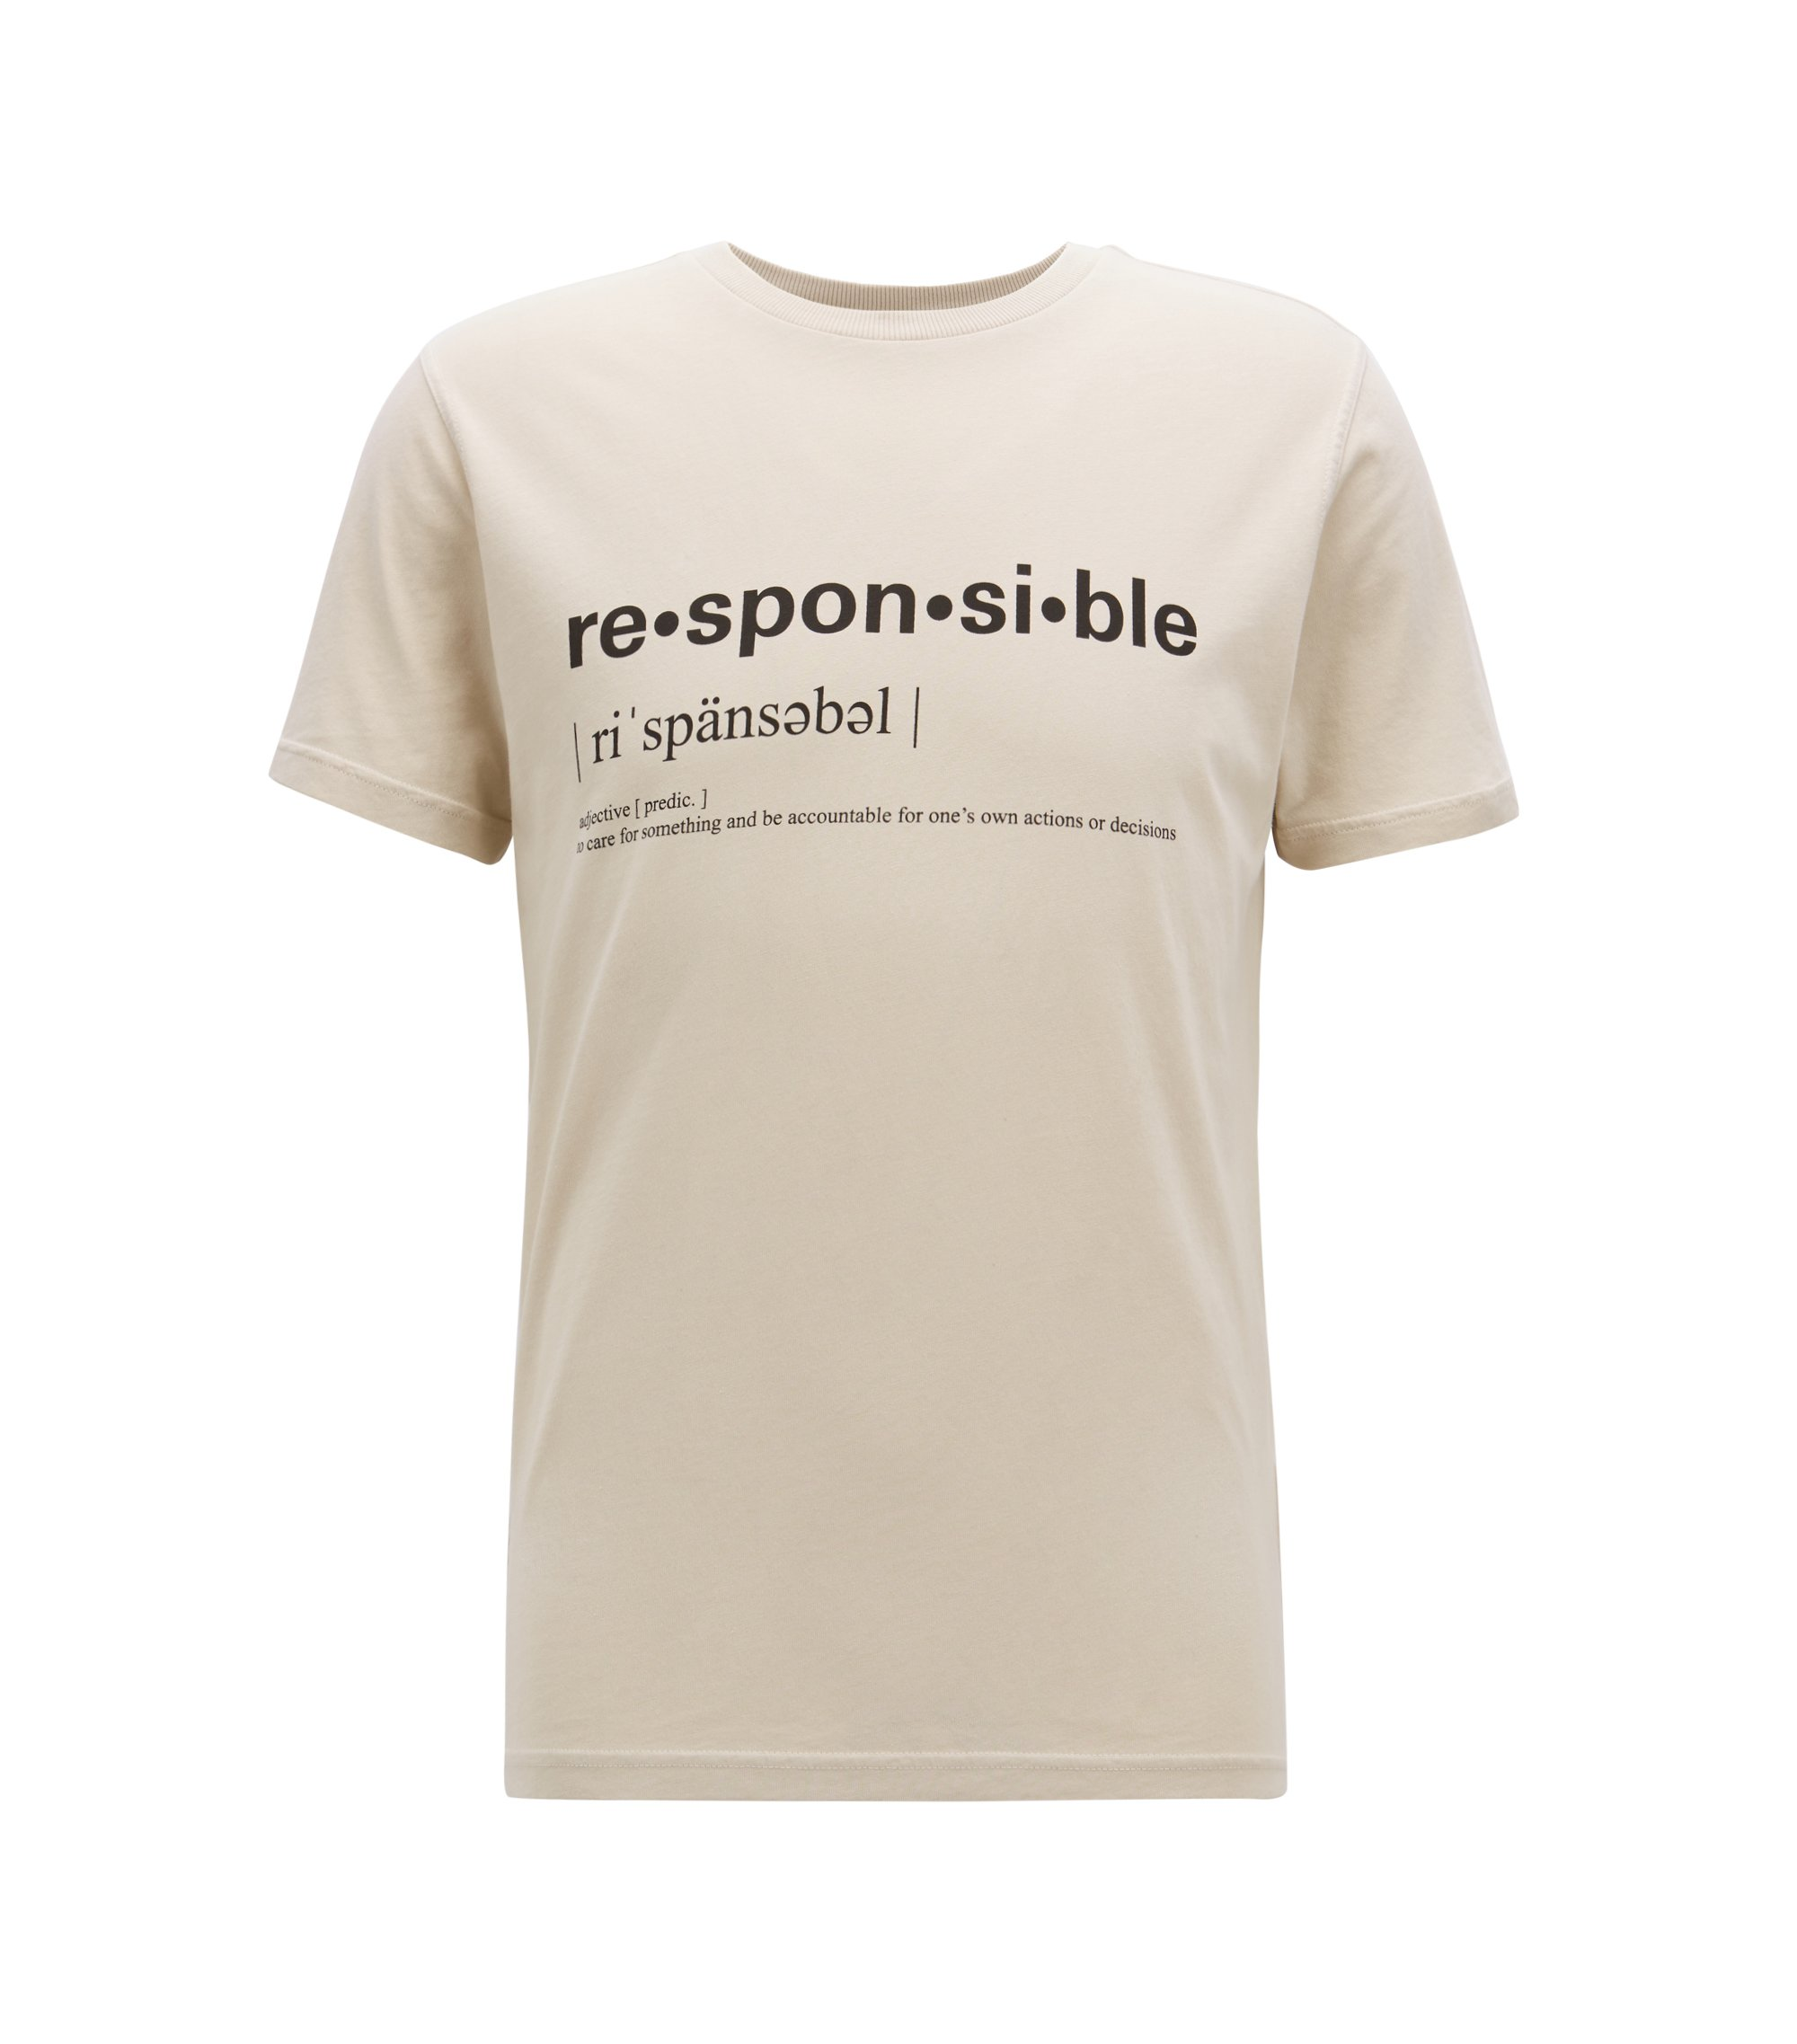 Relaxed-fit slogan T-shirt in recot²® cotton jersey, Beige